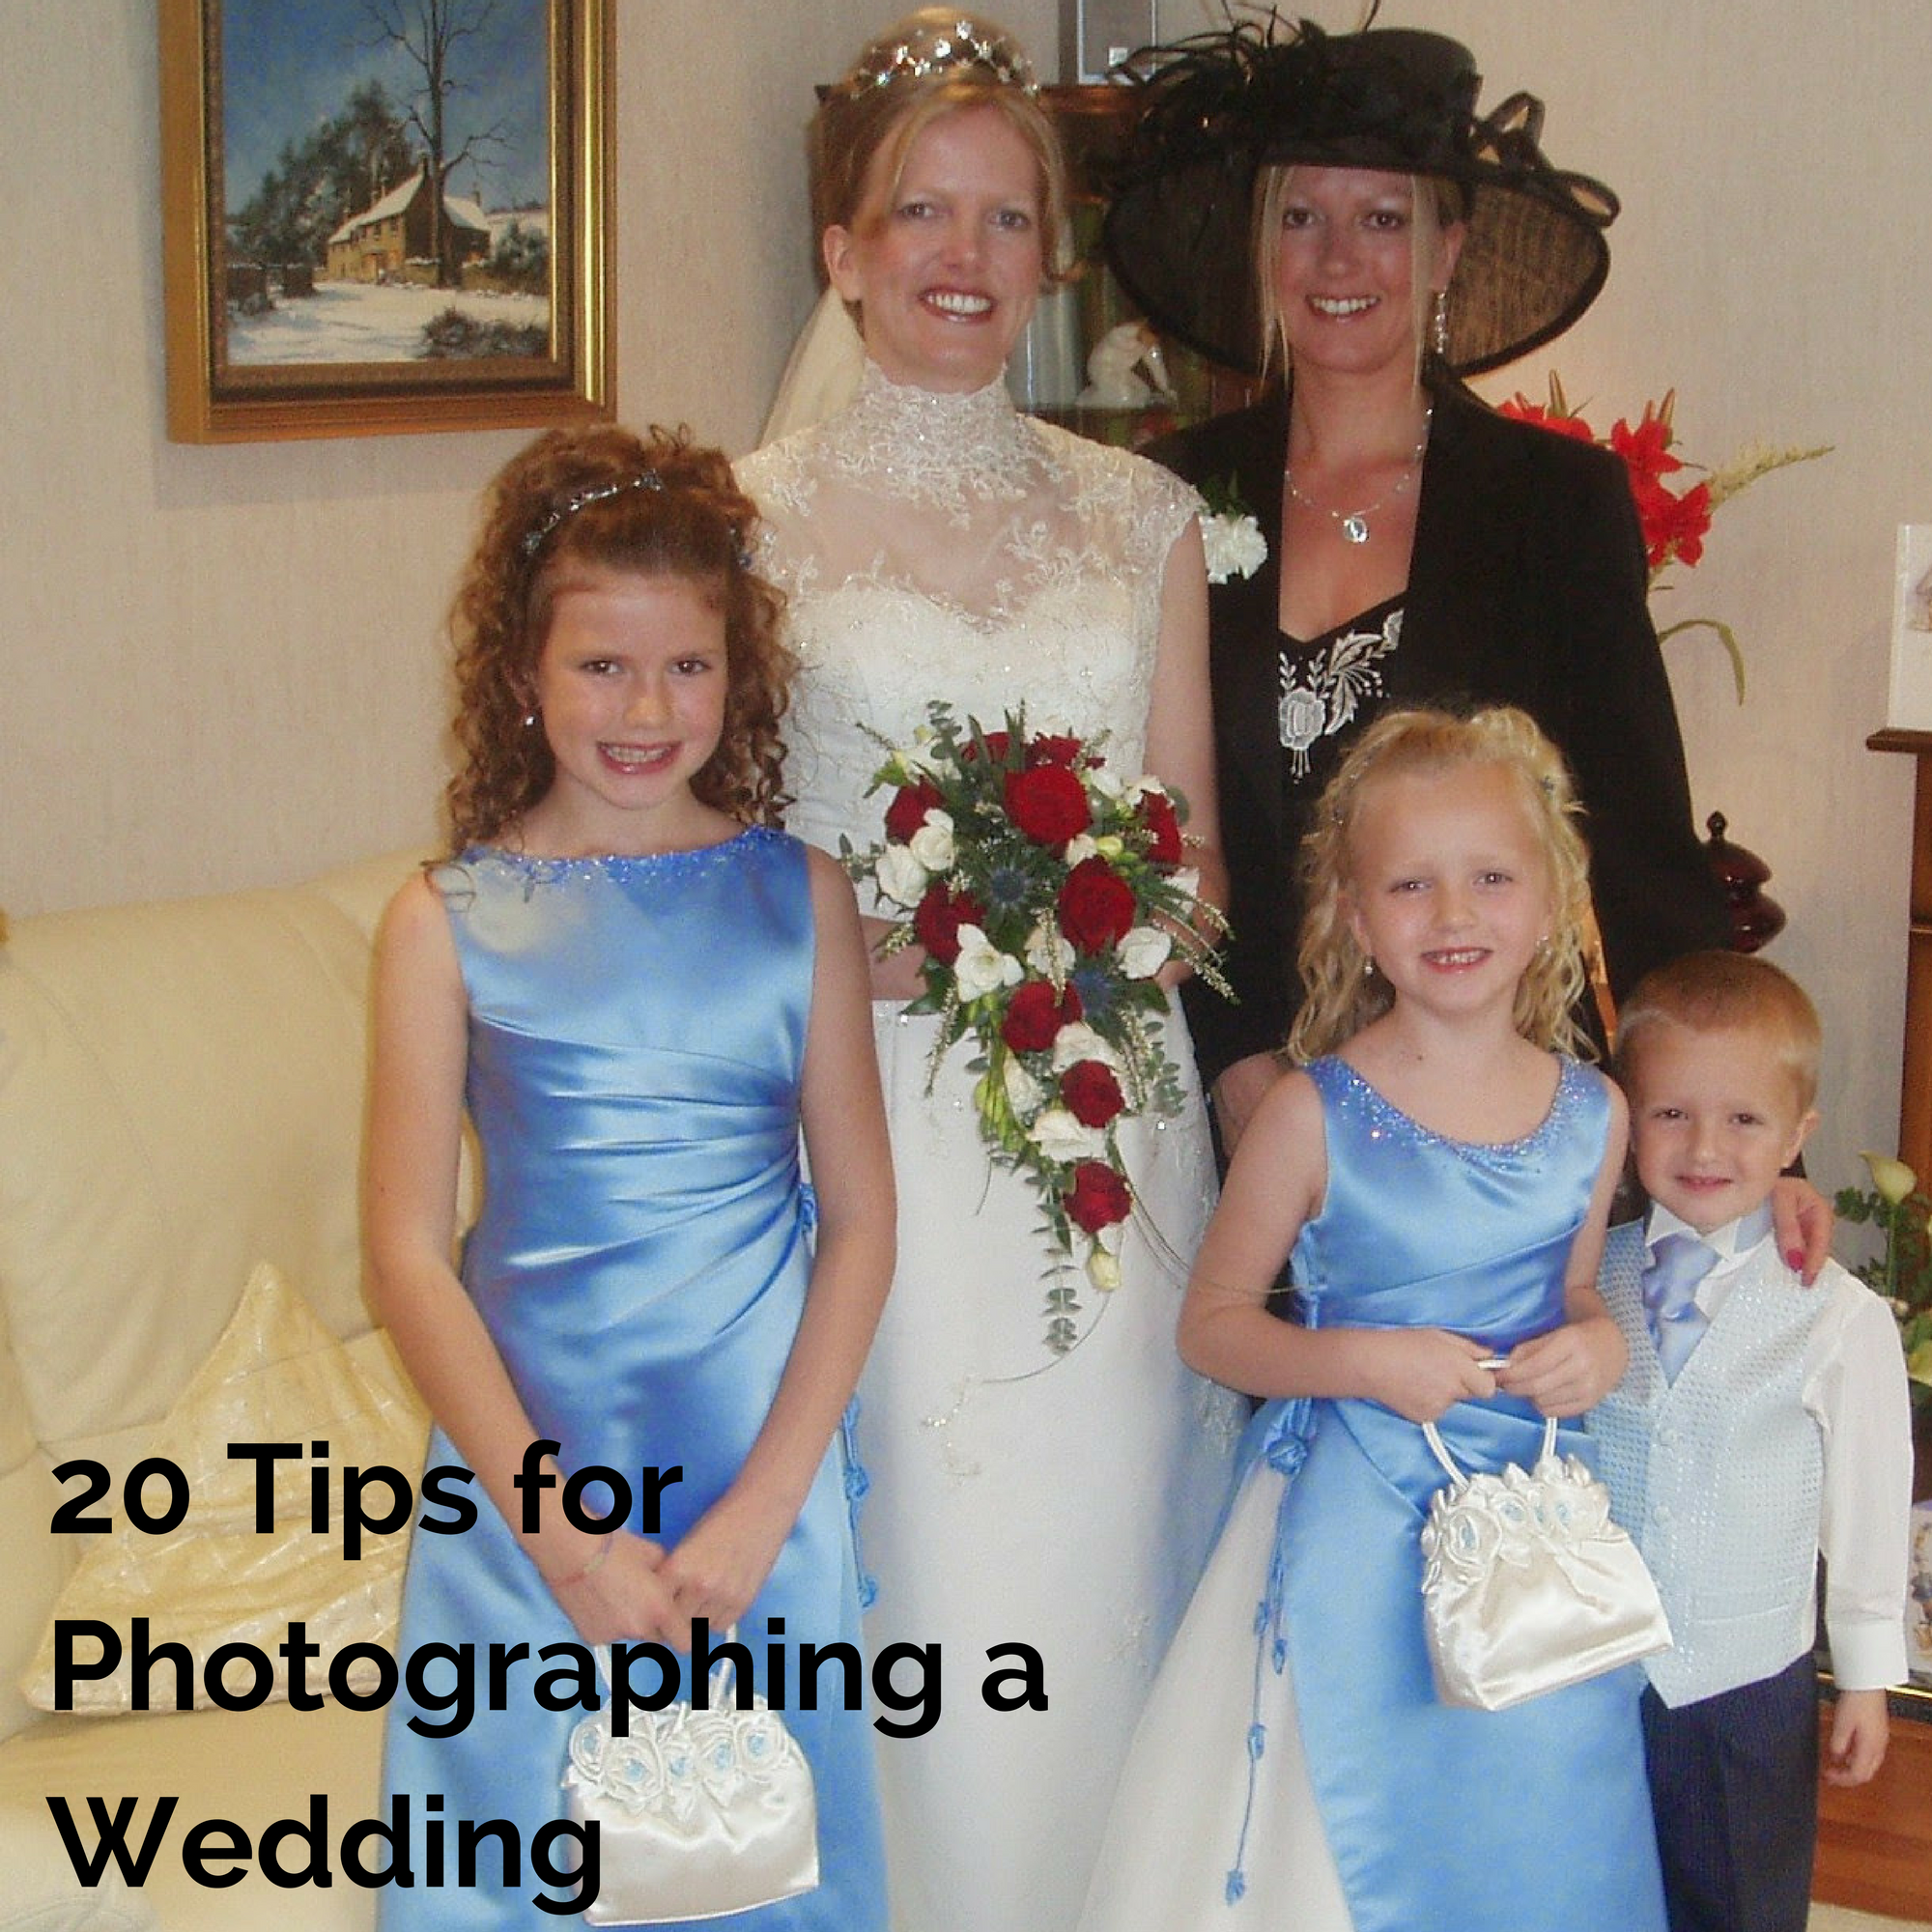 20 Tips for Photographing a Wedding